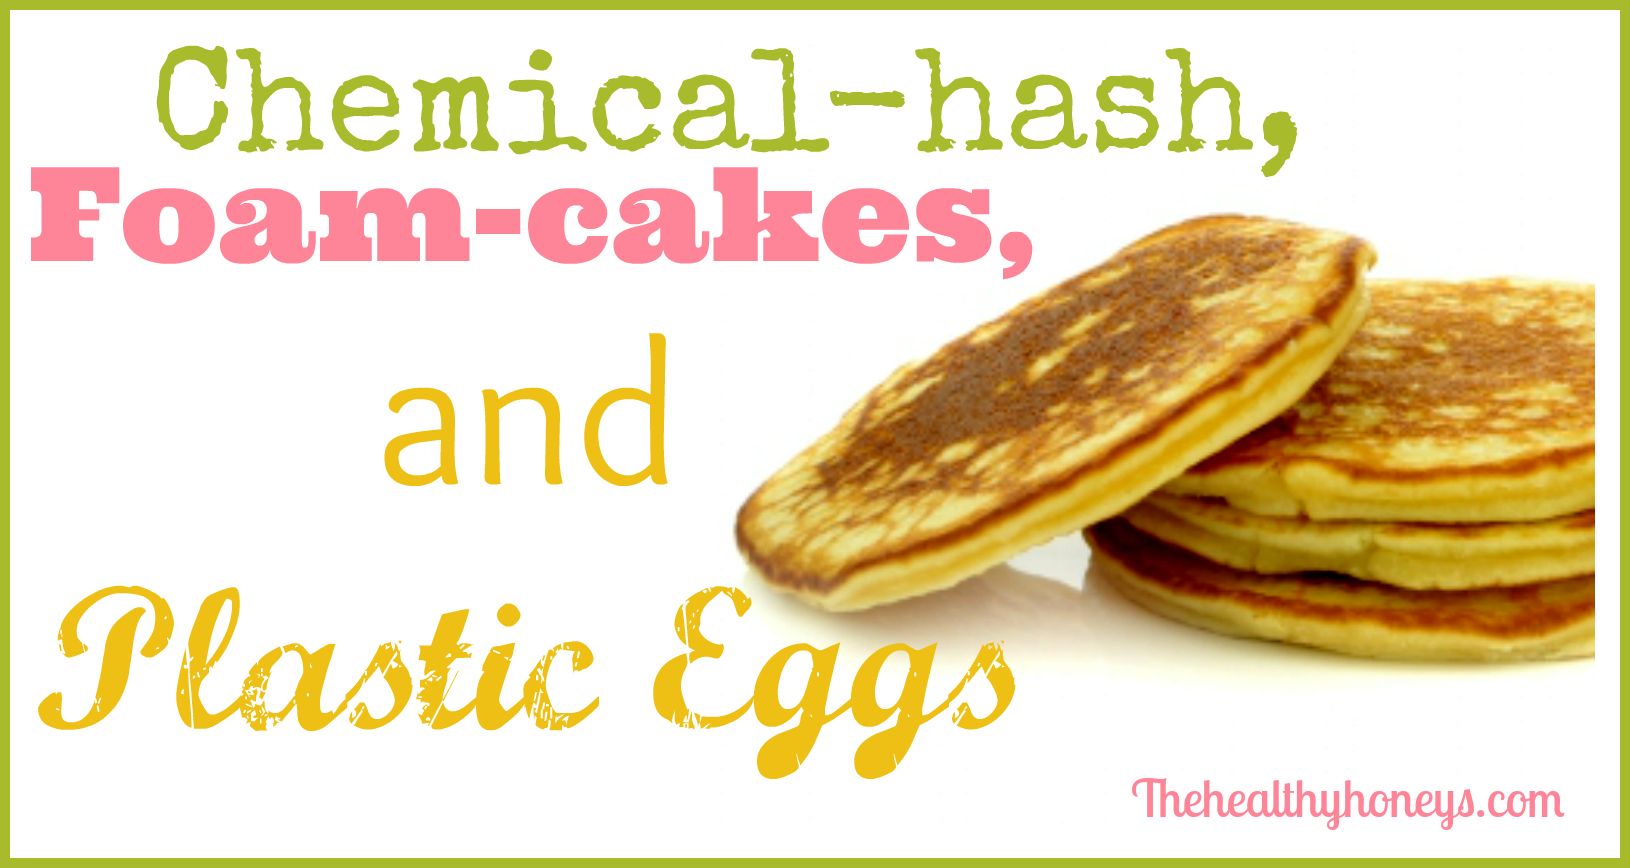 Chemical-Hash, Foam-cakes, and Plastic Eggs